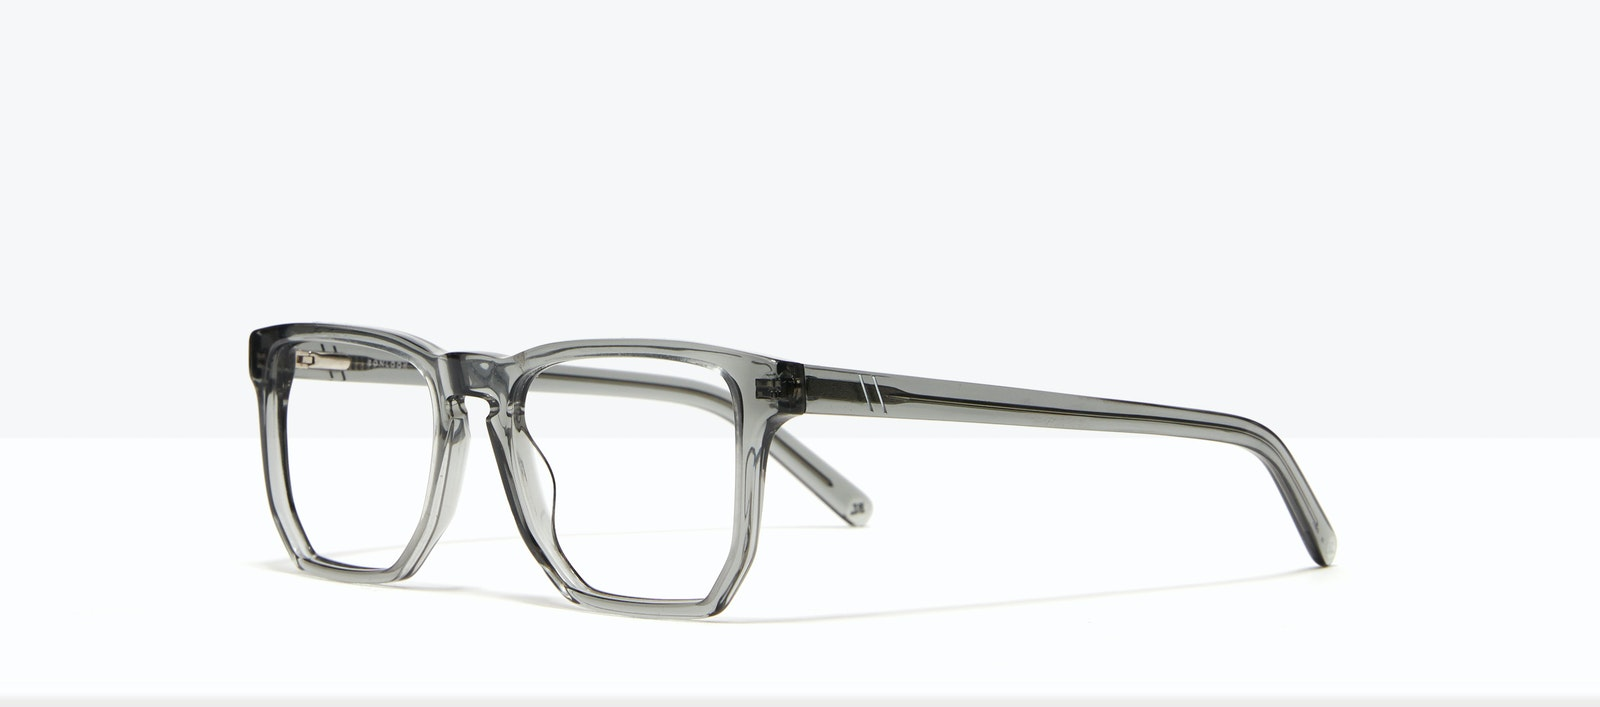 Affordable Fashion Glasses Square Eyeglasses Men Andy Storm Tilt